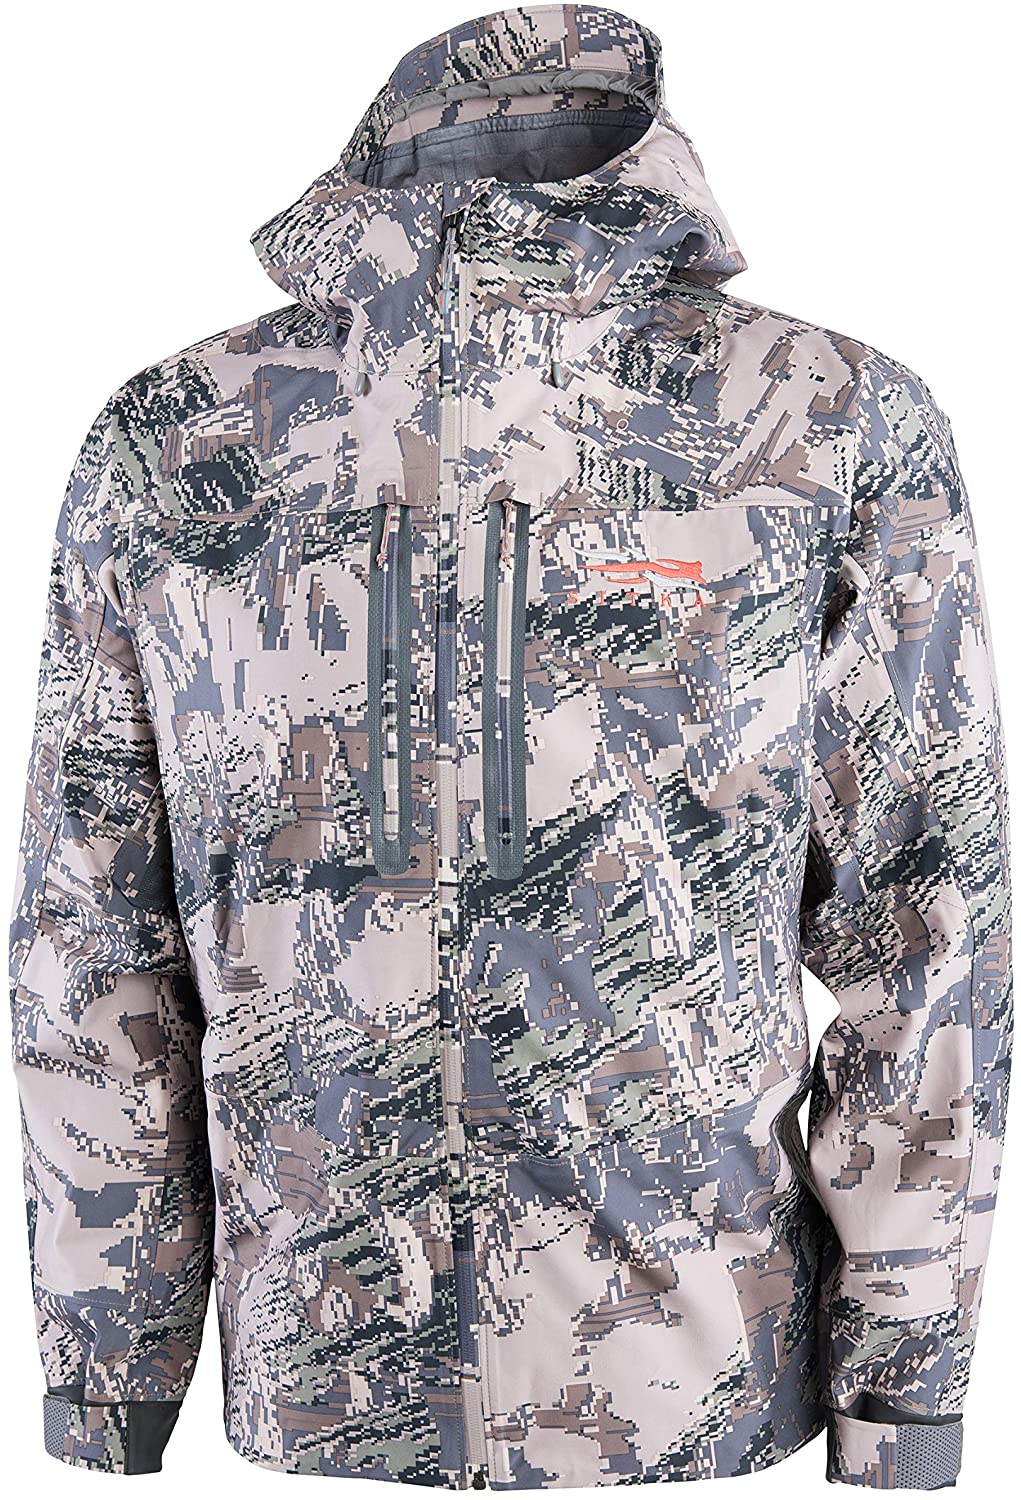 Men's Stormfront Jacket in Optifade Open Country